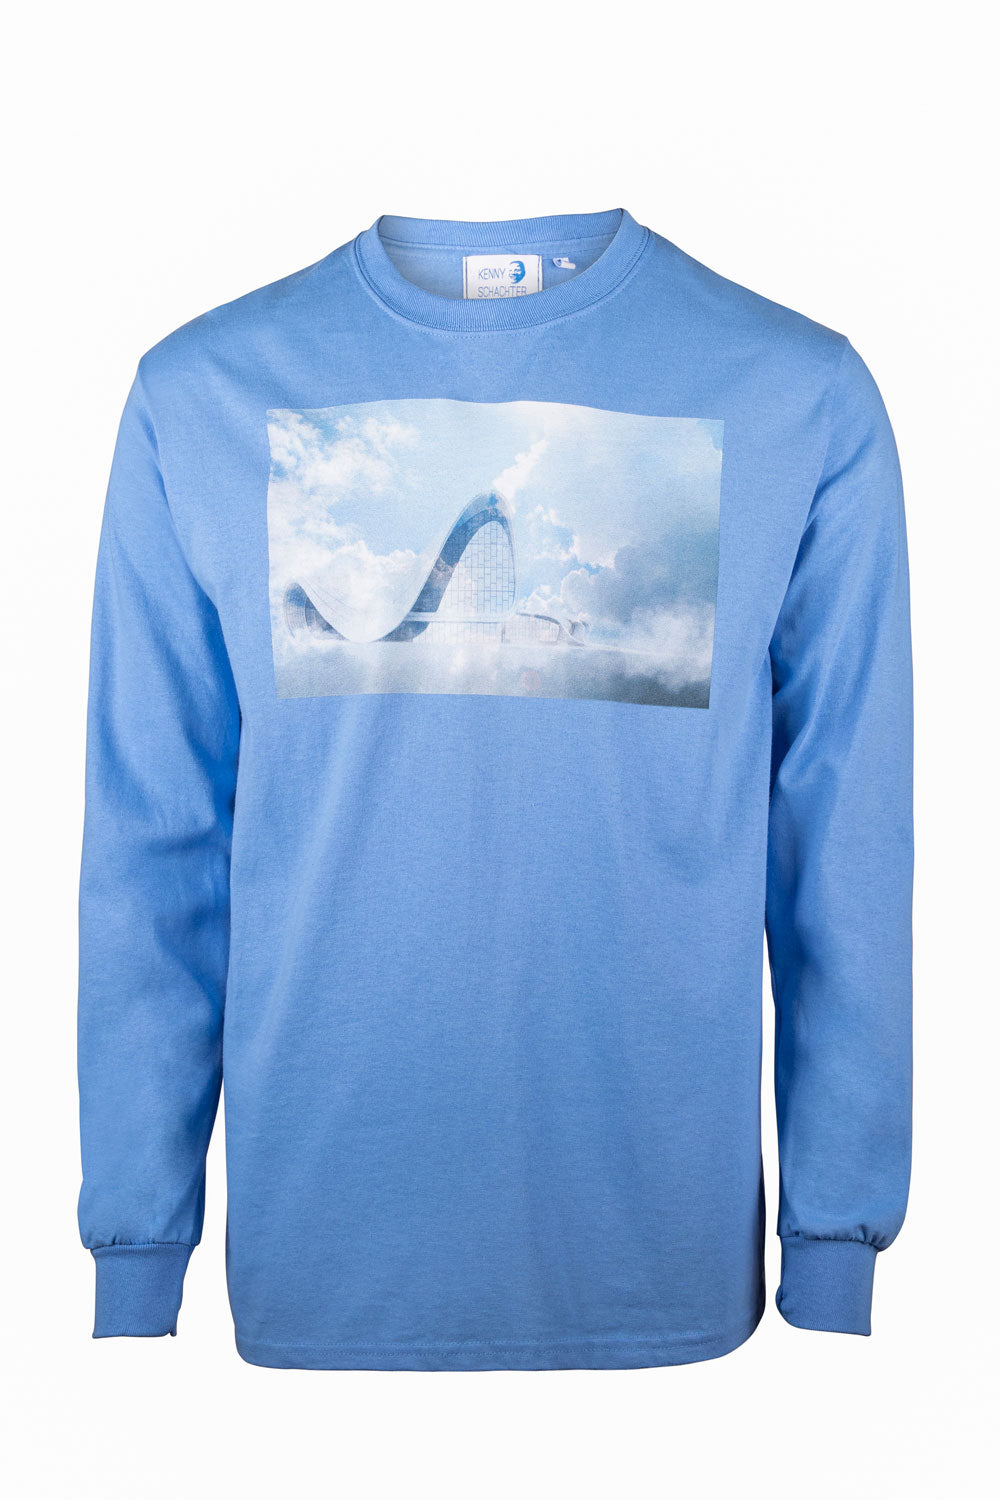 Kenny Schachter 'Zaha Clouds' Long Sleeve Top